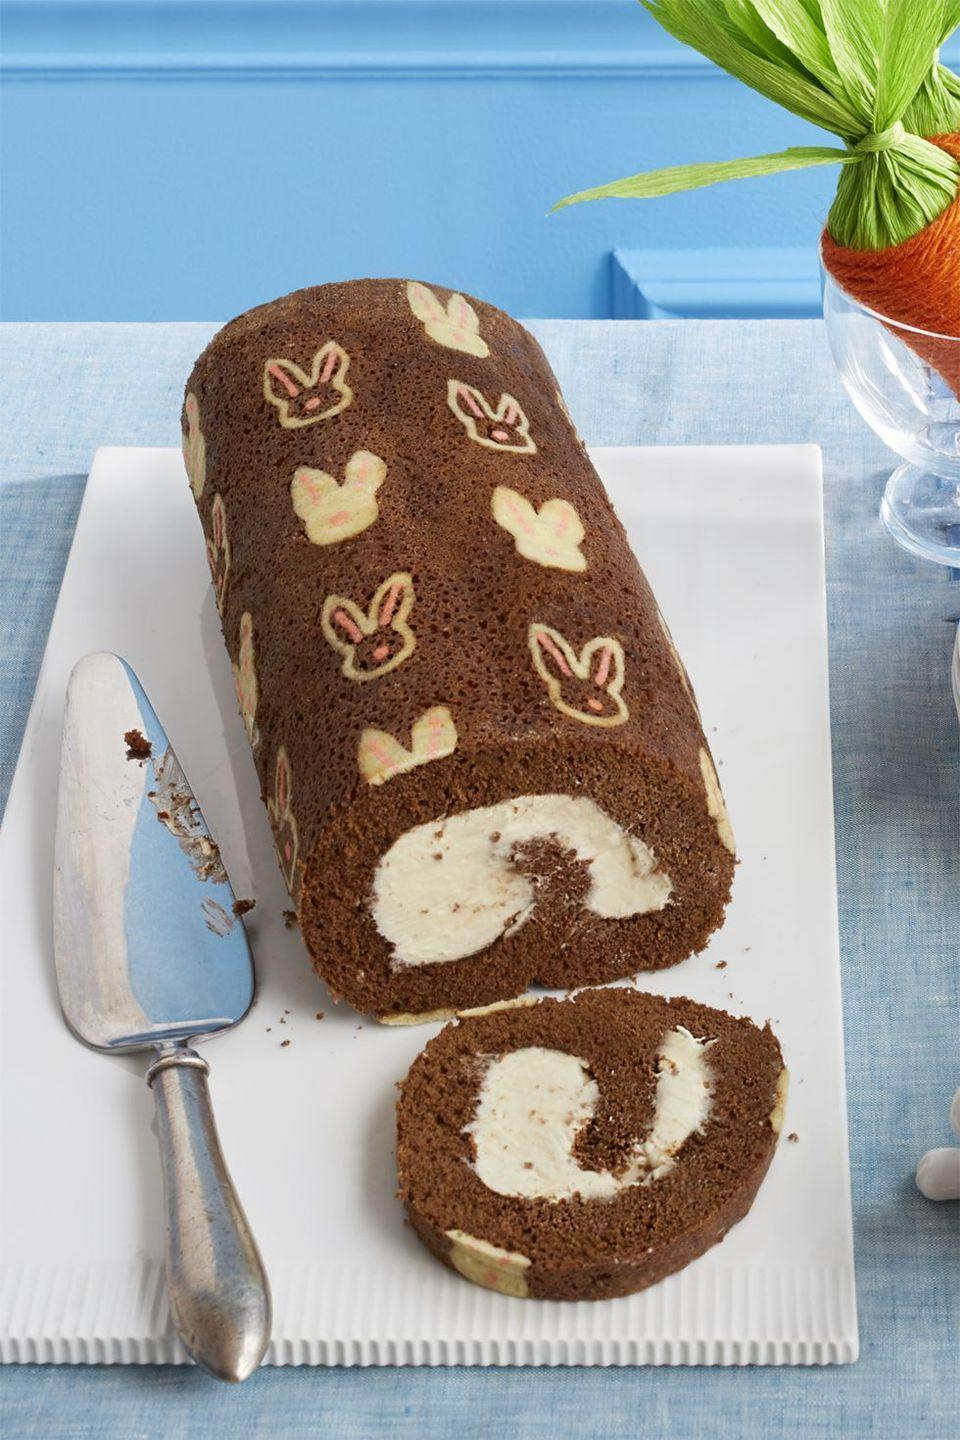 "<p>Give Grandma's classic swiss roll an Easter refresh with pink and white bunny stamps. </p><p><em><a href=""https://www.womansday.com/food-recipes/food-drinks/recipes/a58125/bunny-mocha-swiss-roll-recipe/"" rel=""nofollow noopener"" target=""_blank"" data-ylk=""slk:Get the recipe from Woman's Day »"" class=""link rapid-noclick-resp"">Get the recipe from Woman's Day »</a></em></p>"